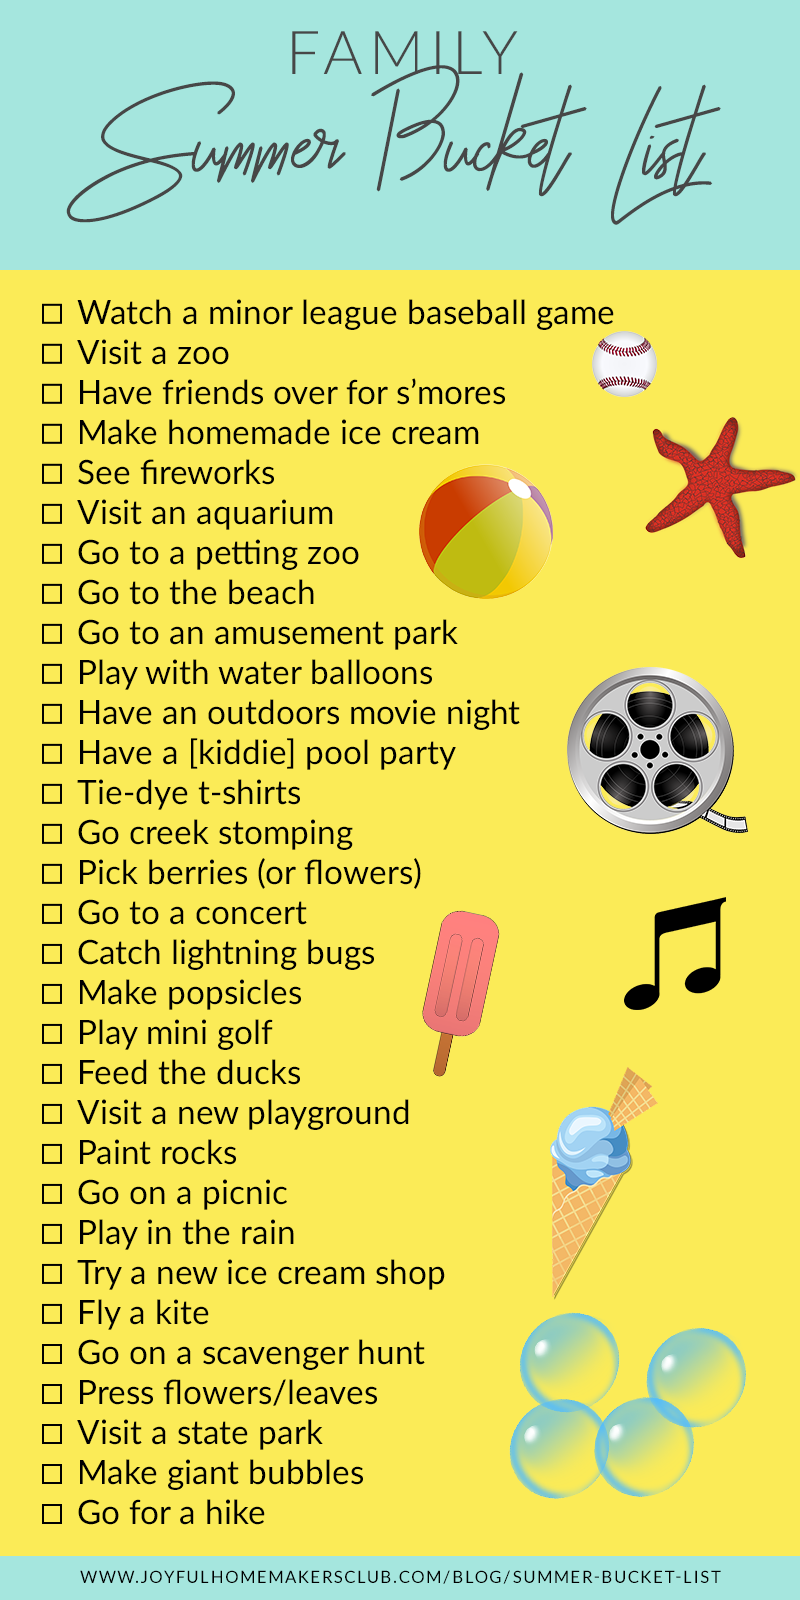 A fun summer bucket list to do with the family this summer! #family #kidfriendly #activities #kidactivities #momlife #summer #bucketlist